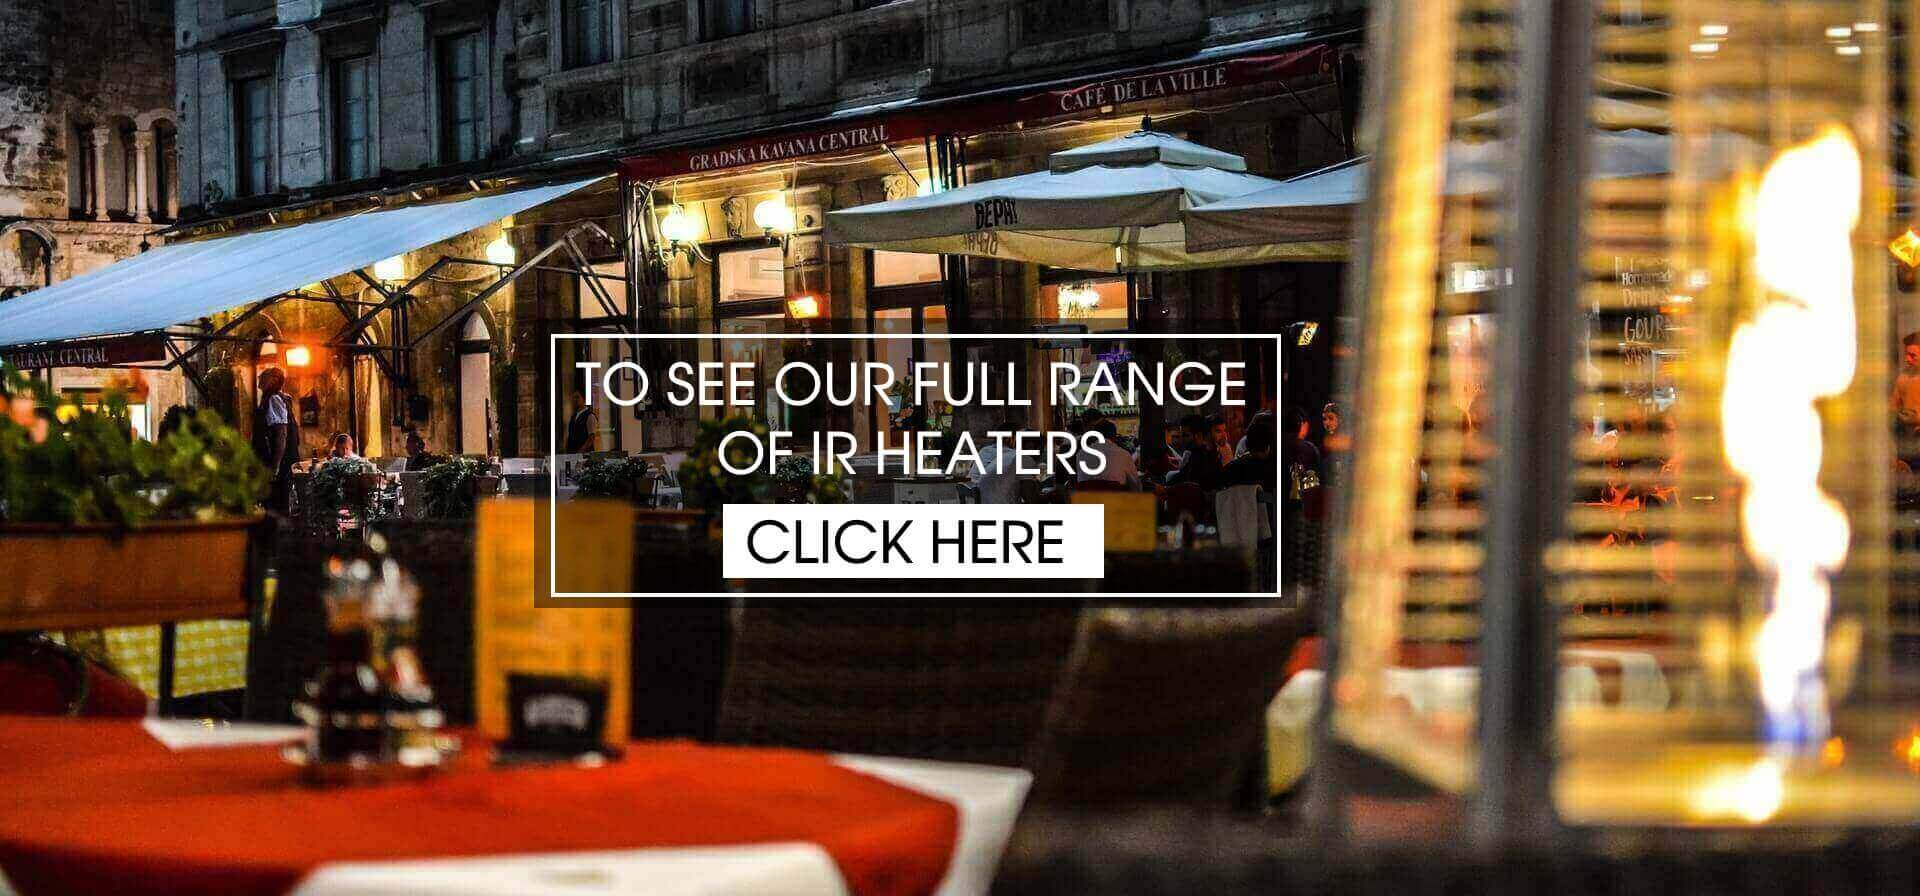 Electric Garage Heater Black Friday Heaters Ireland Outdoor Heaters Infrared Patio Heaters